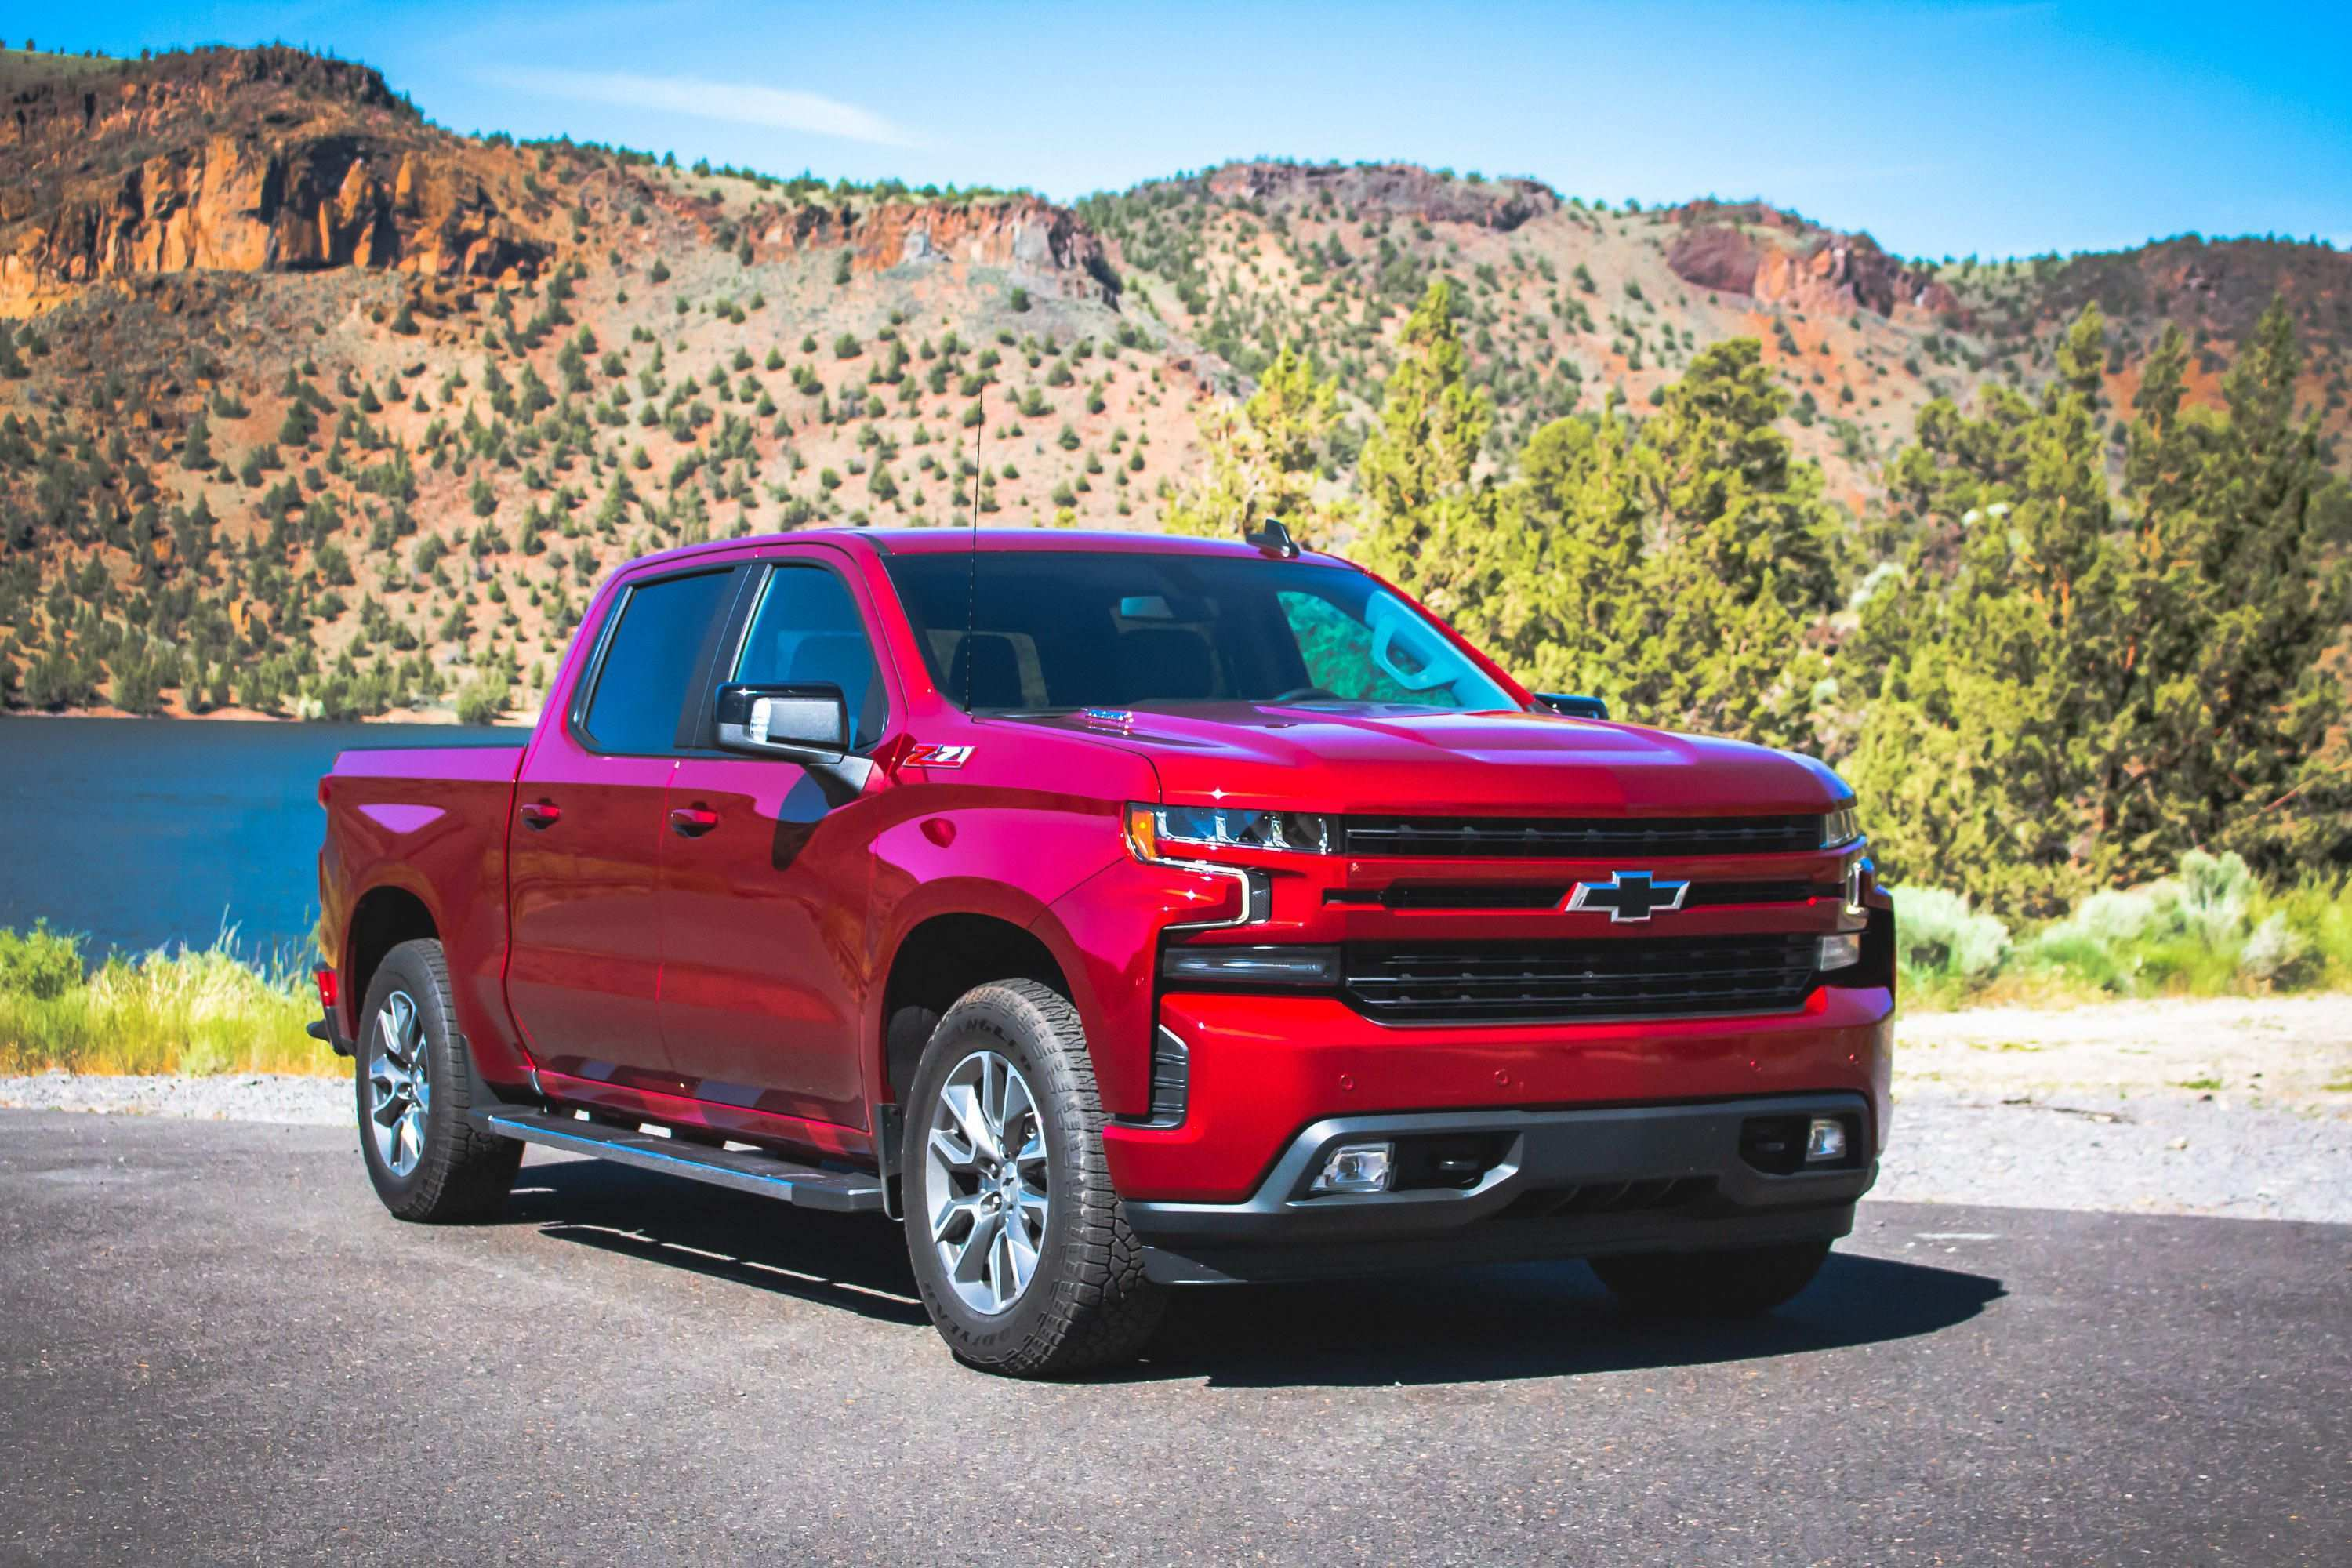 90 All New 2020 Chevrolet Silverado Research New